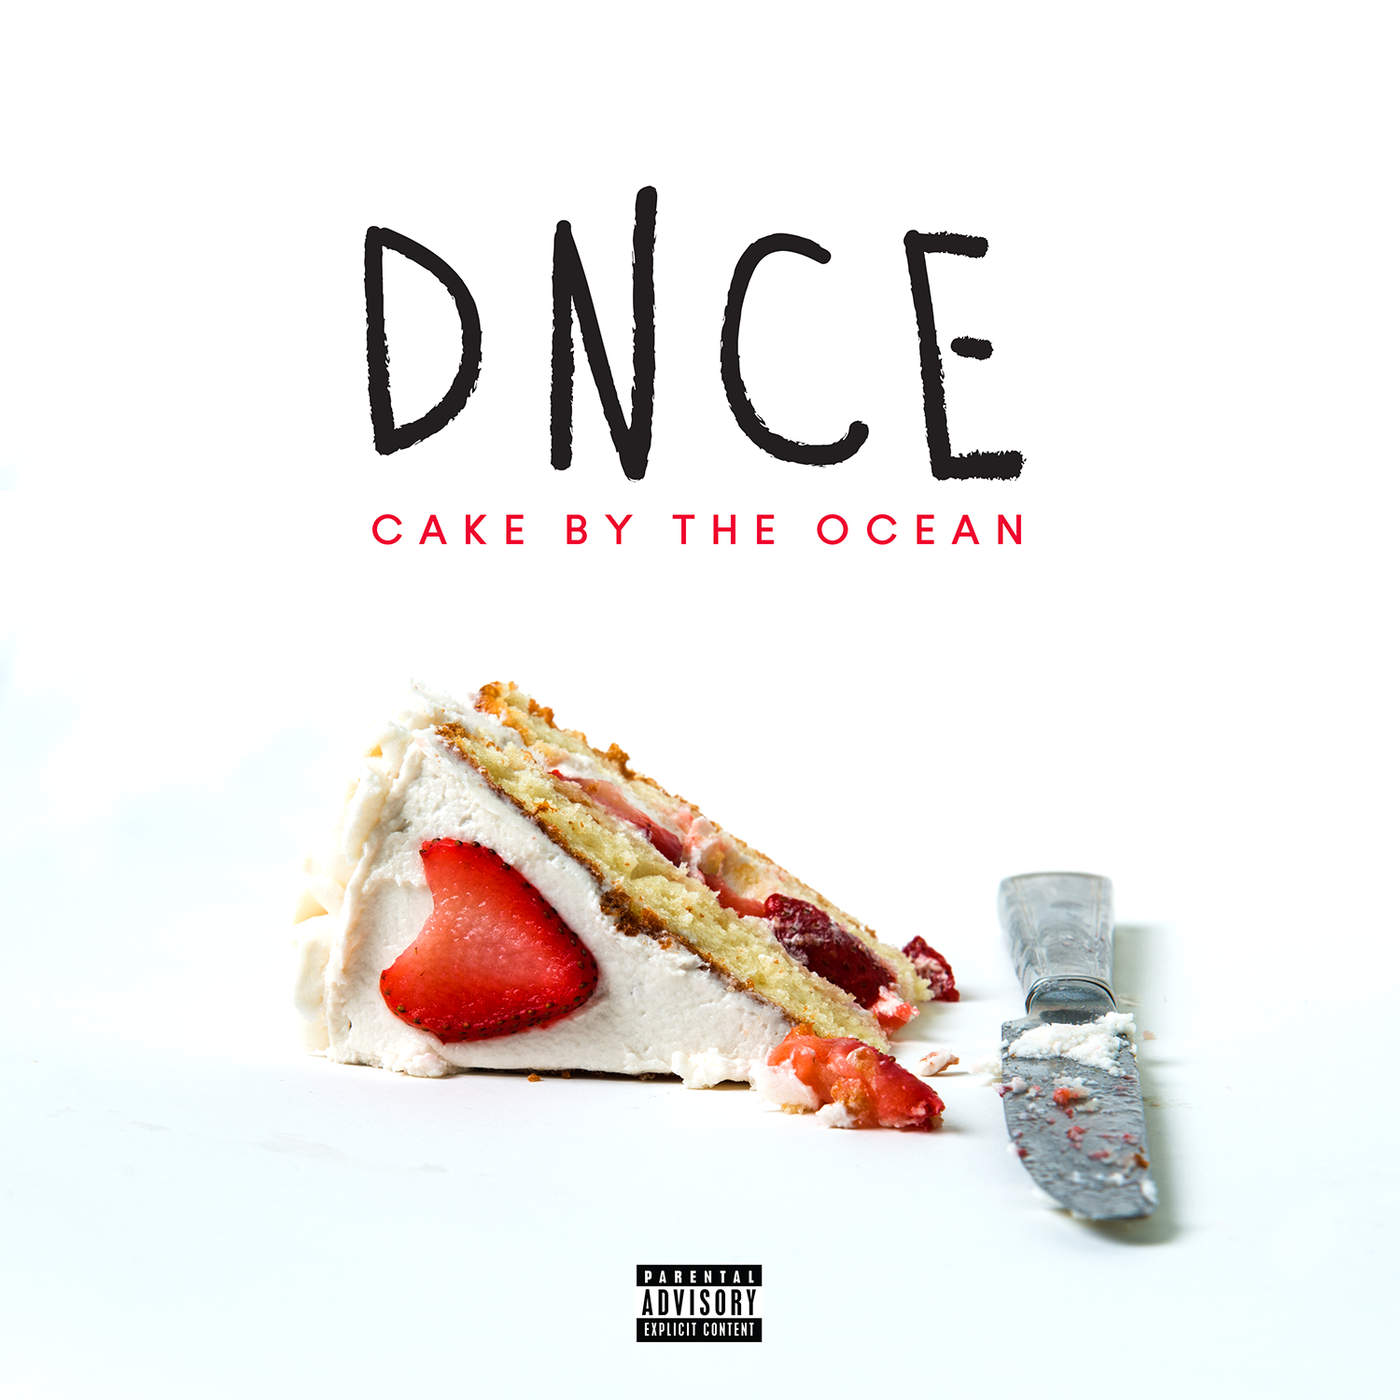 DNCE - Cake By the Ocean - Single Cover